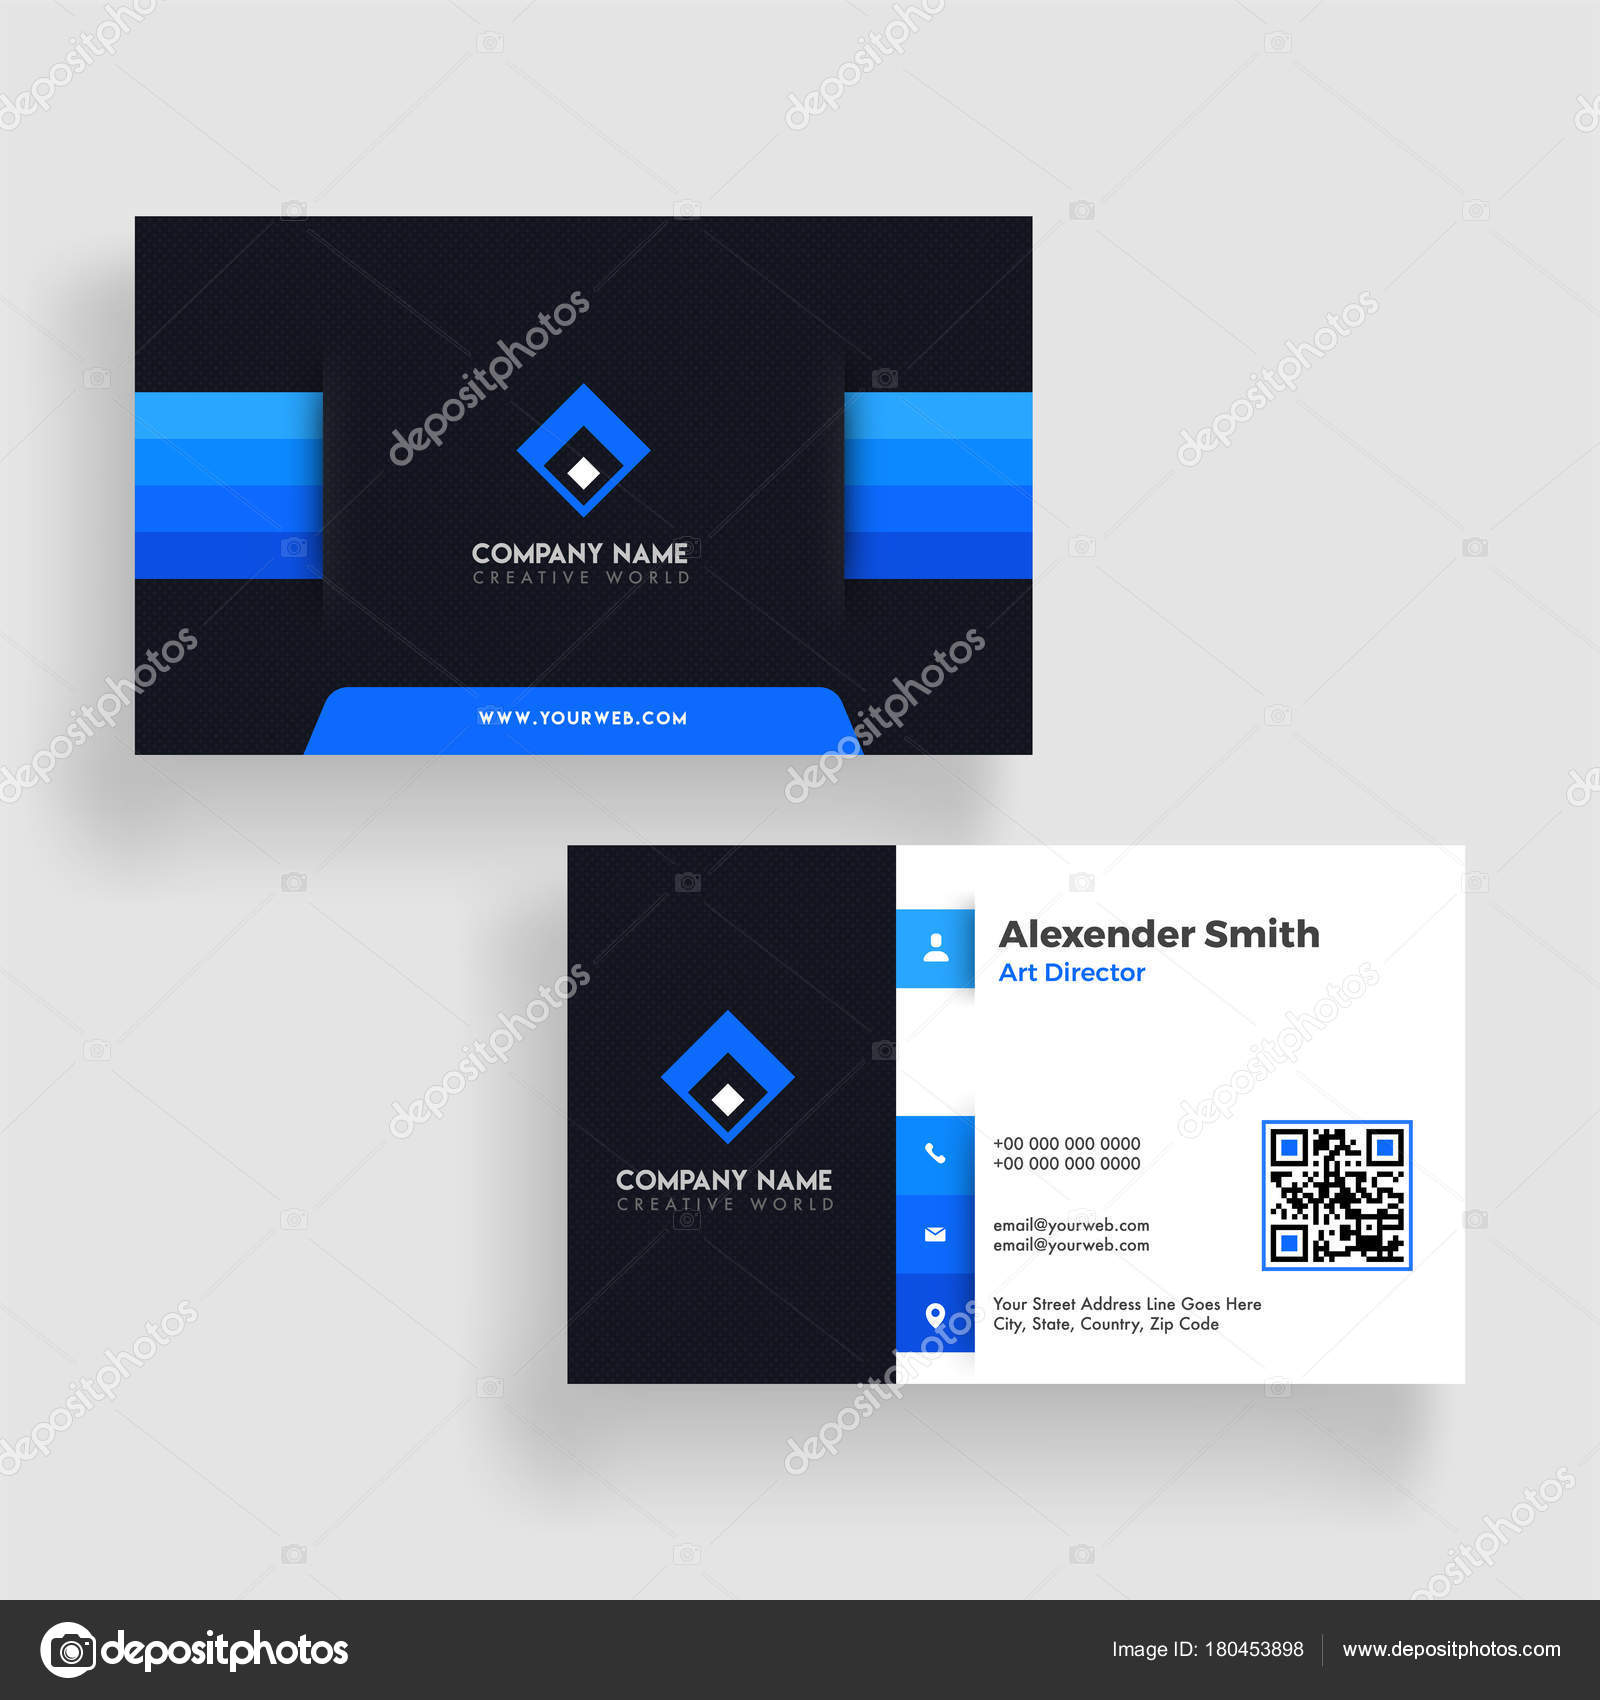 Modern business card template design. Both sided, Contact card f ...